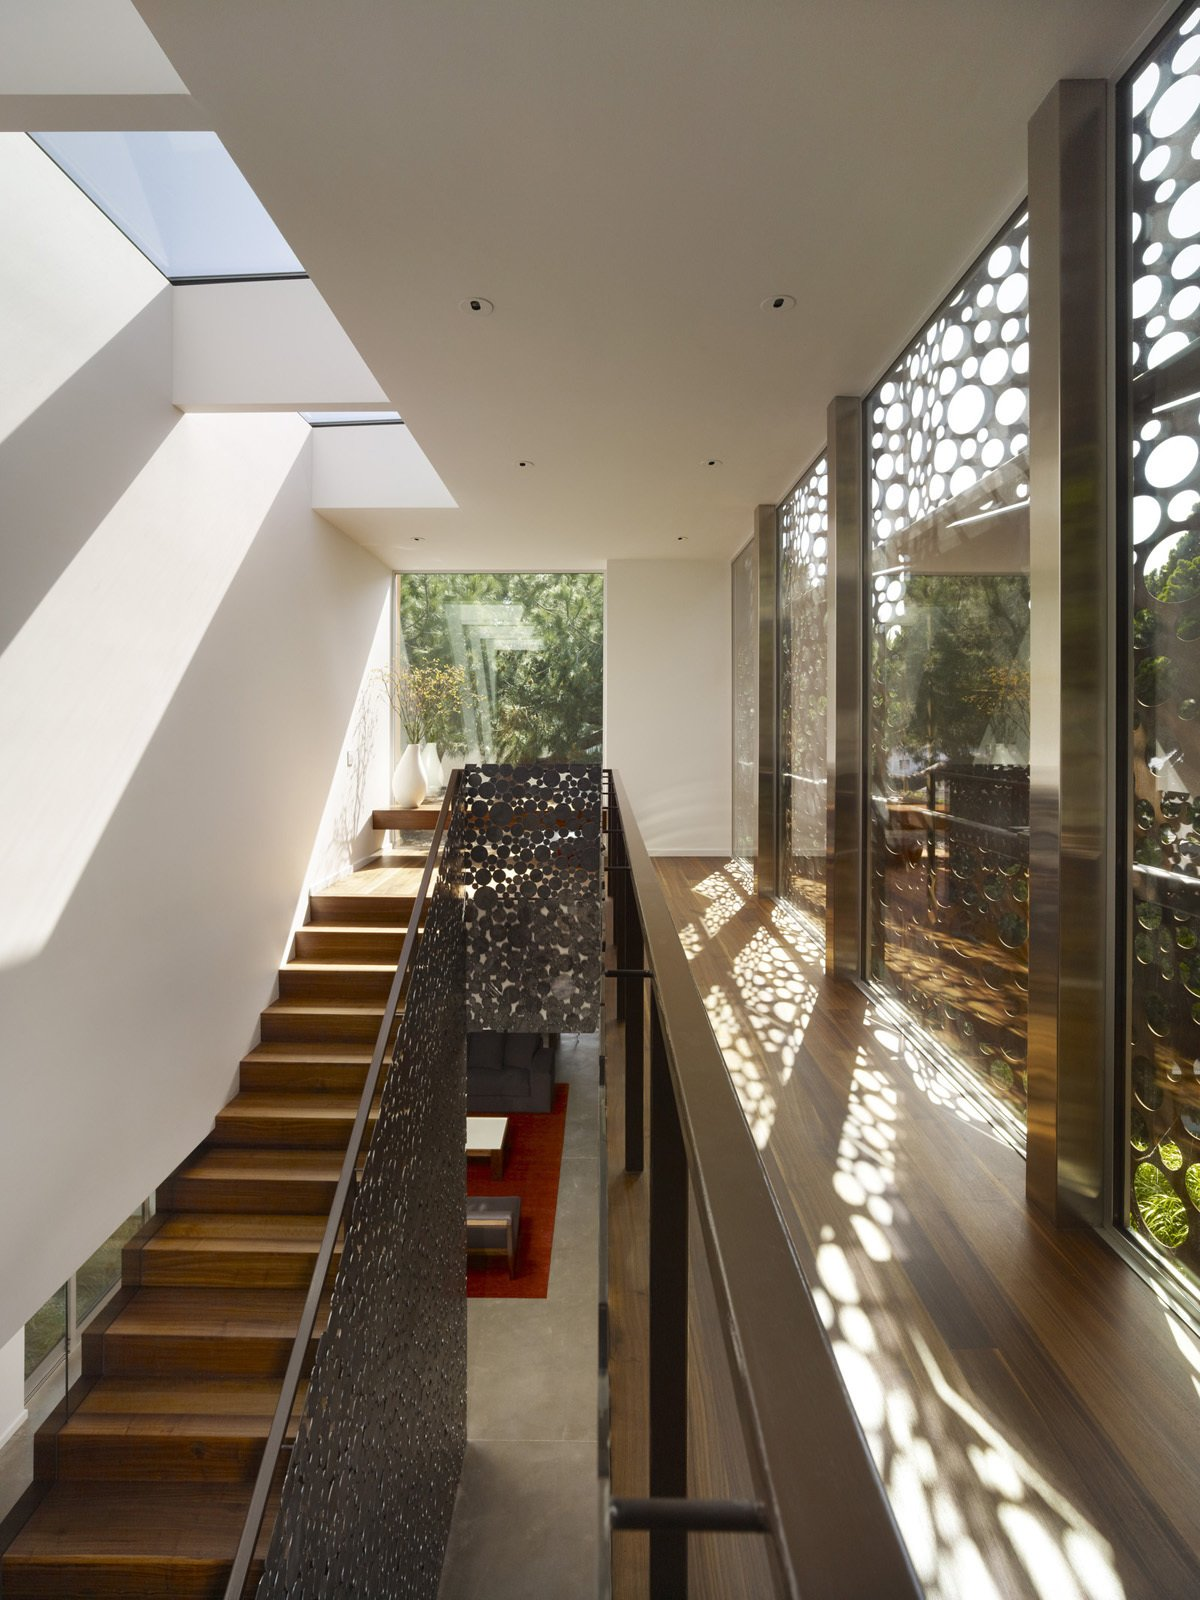 """In stark contrast to Monti's 1920s home now being rented out, the Walnut Residence never seems to run out of natural light. """"After six months of living here, my wife and I noticed that we never turn on the light,"""" remarked Monti. """"I never have to turn on the light—ever.""""  Ways to Incorporate Trees into Homes by Diana Budds"""